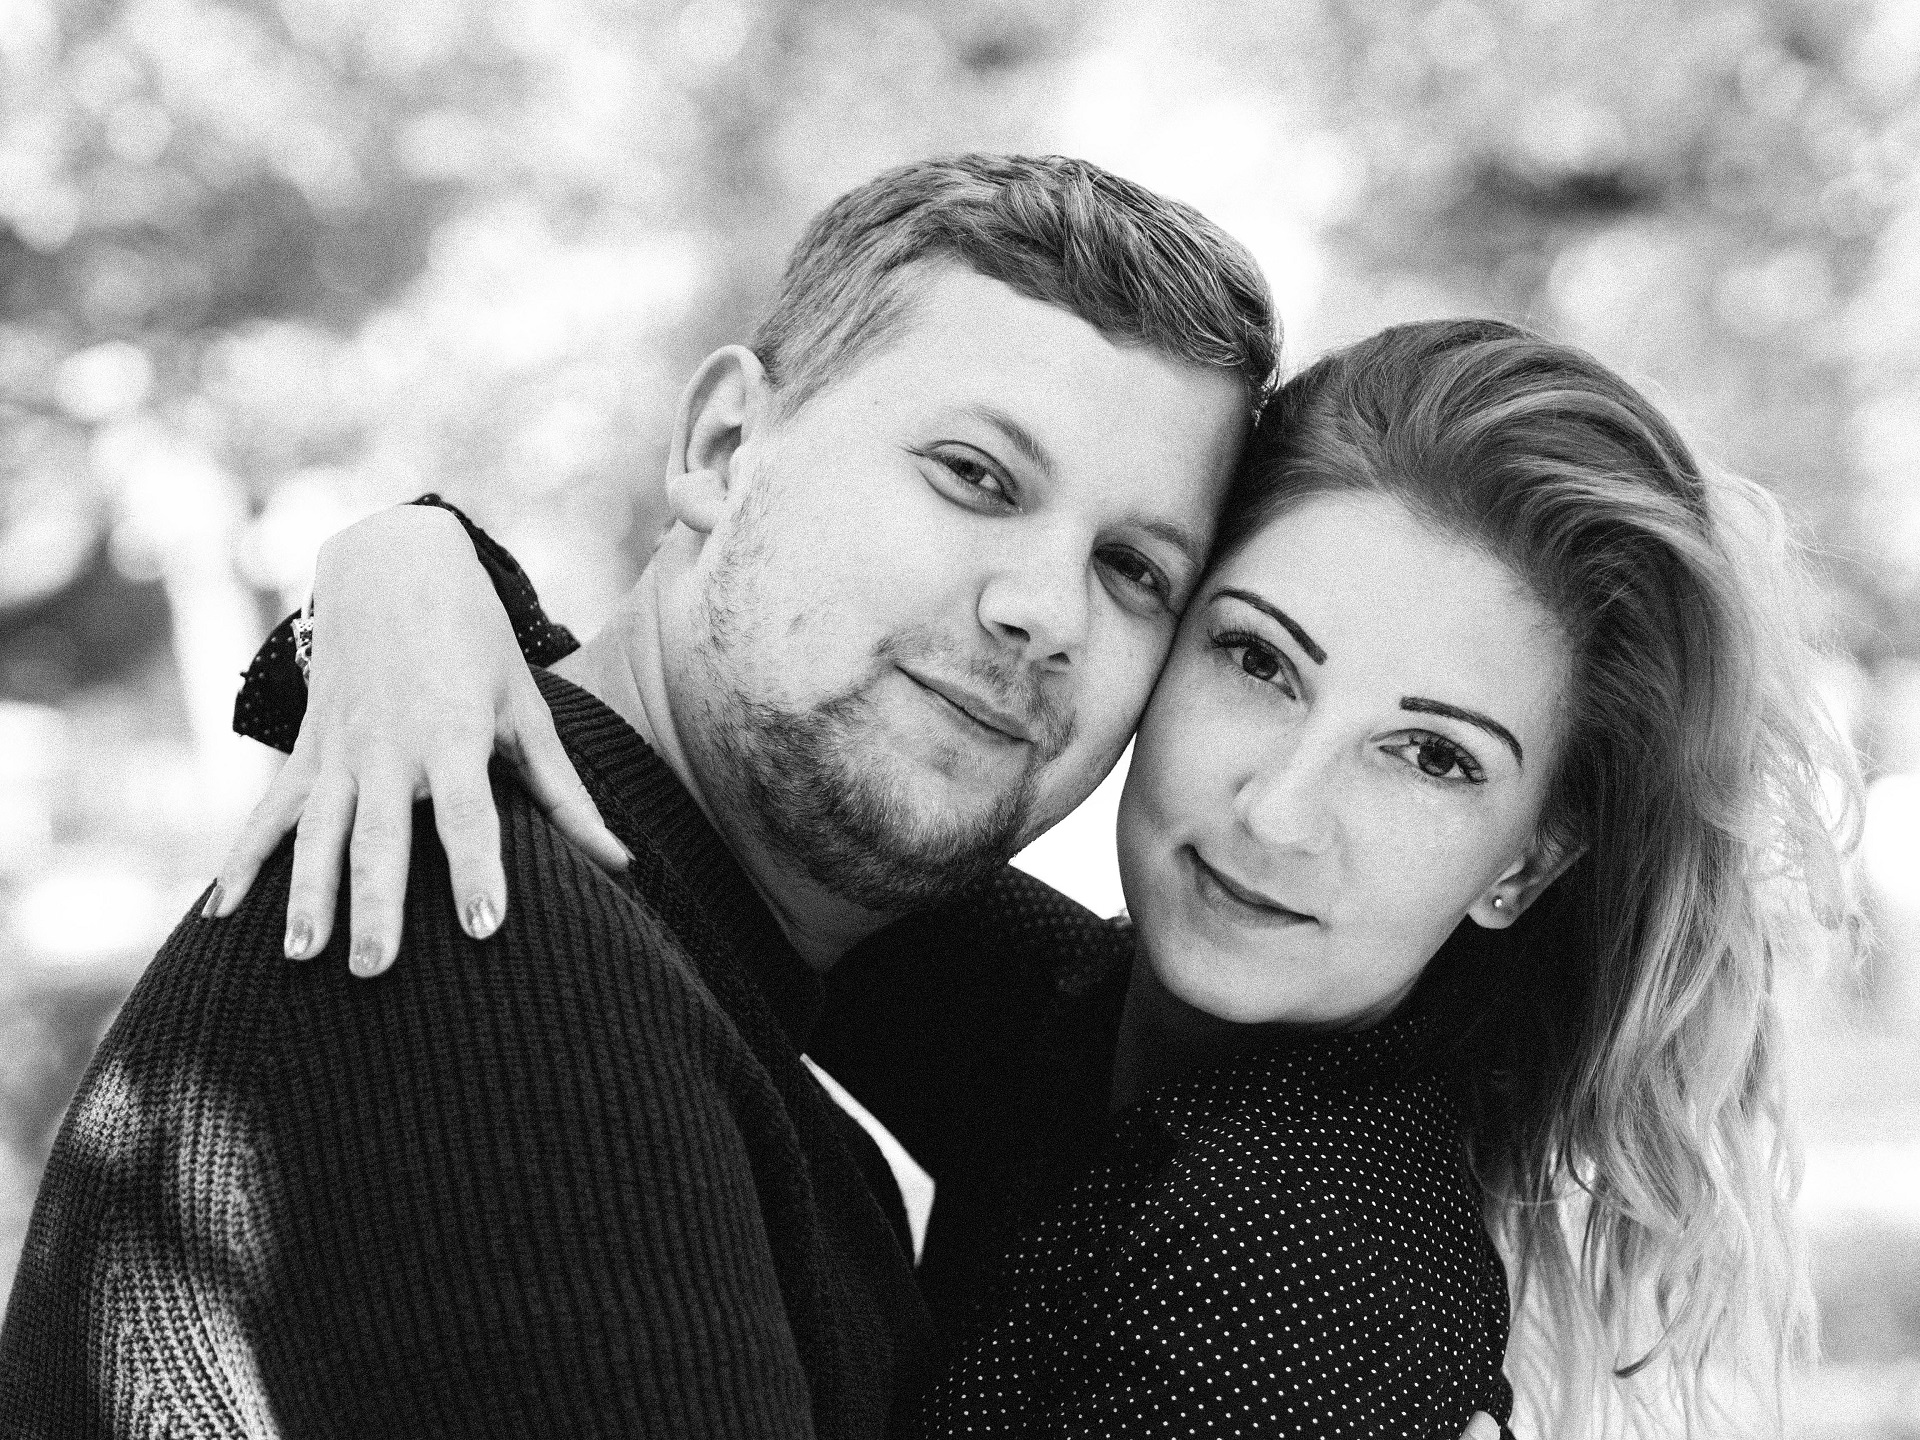 Love Couple Pictures Vienna Schönnbrunn Engagement photographer